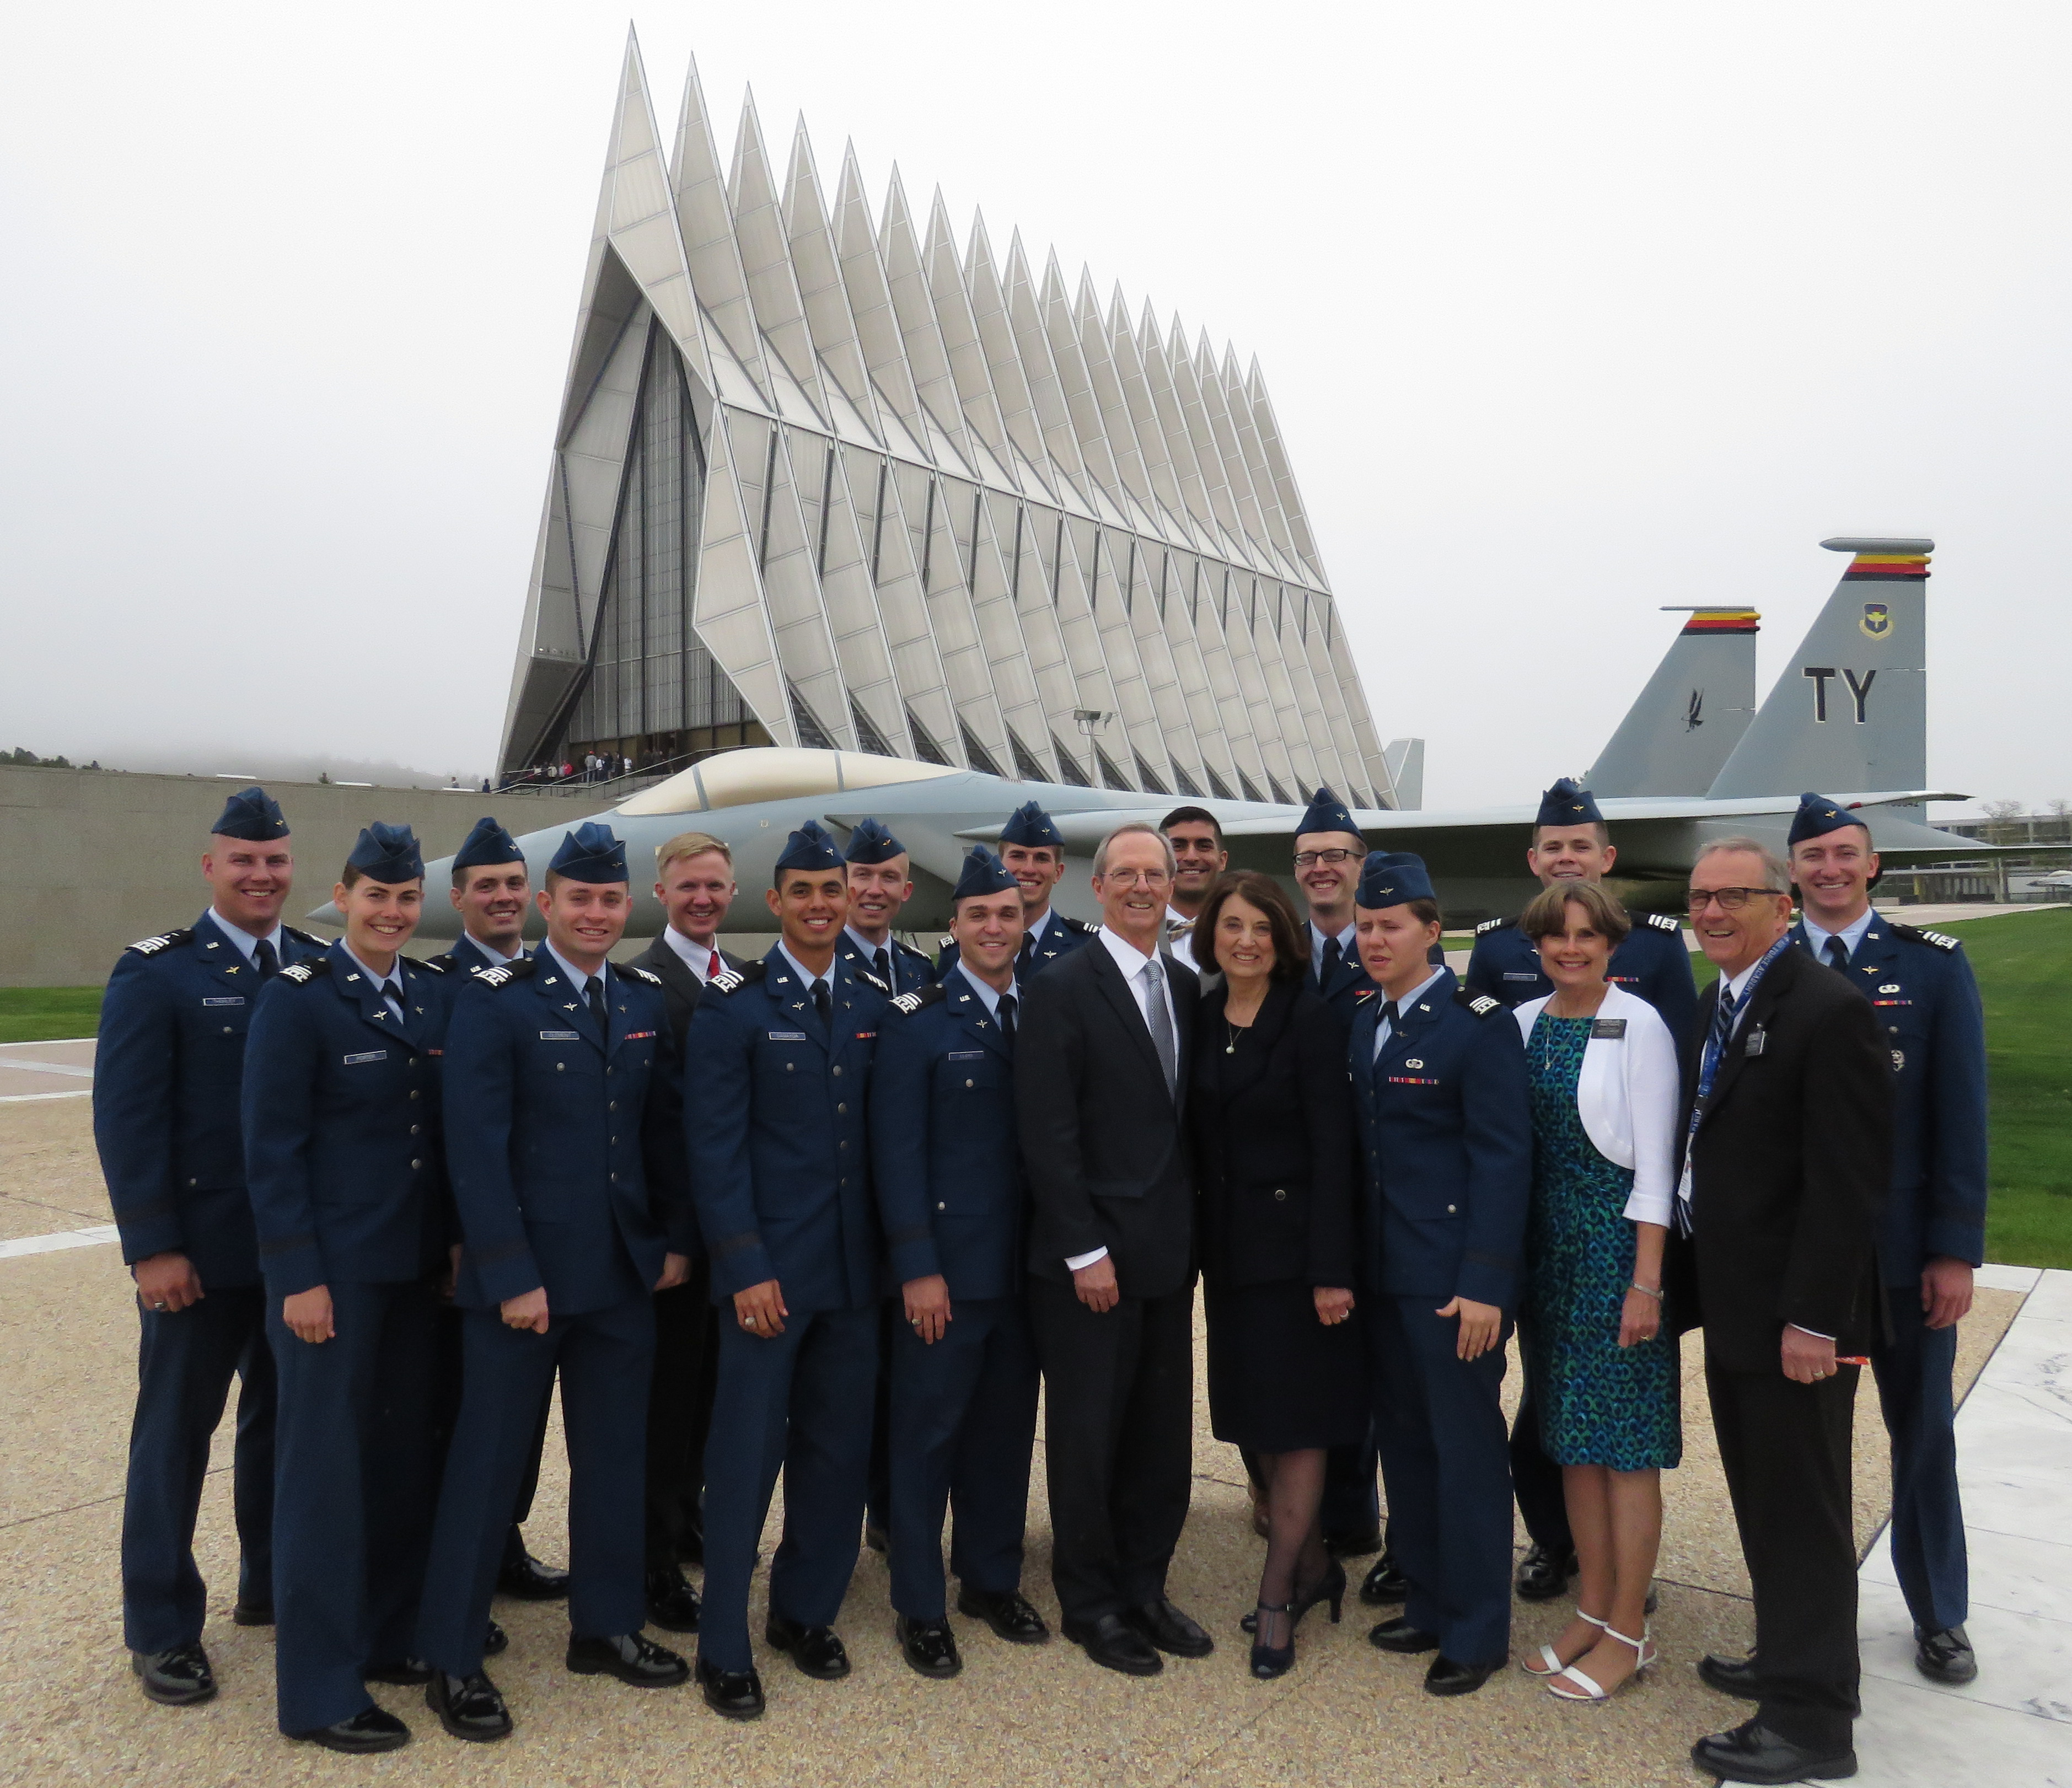 Graduating seniors stand with guest speaker, Brother Tad R. Callister and his wife, Sister Kathryn S. Callister, along with Brother and Sister Lee, before the 3rd annual Baccalaureate Service on USAFA.